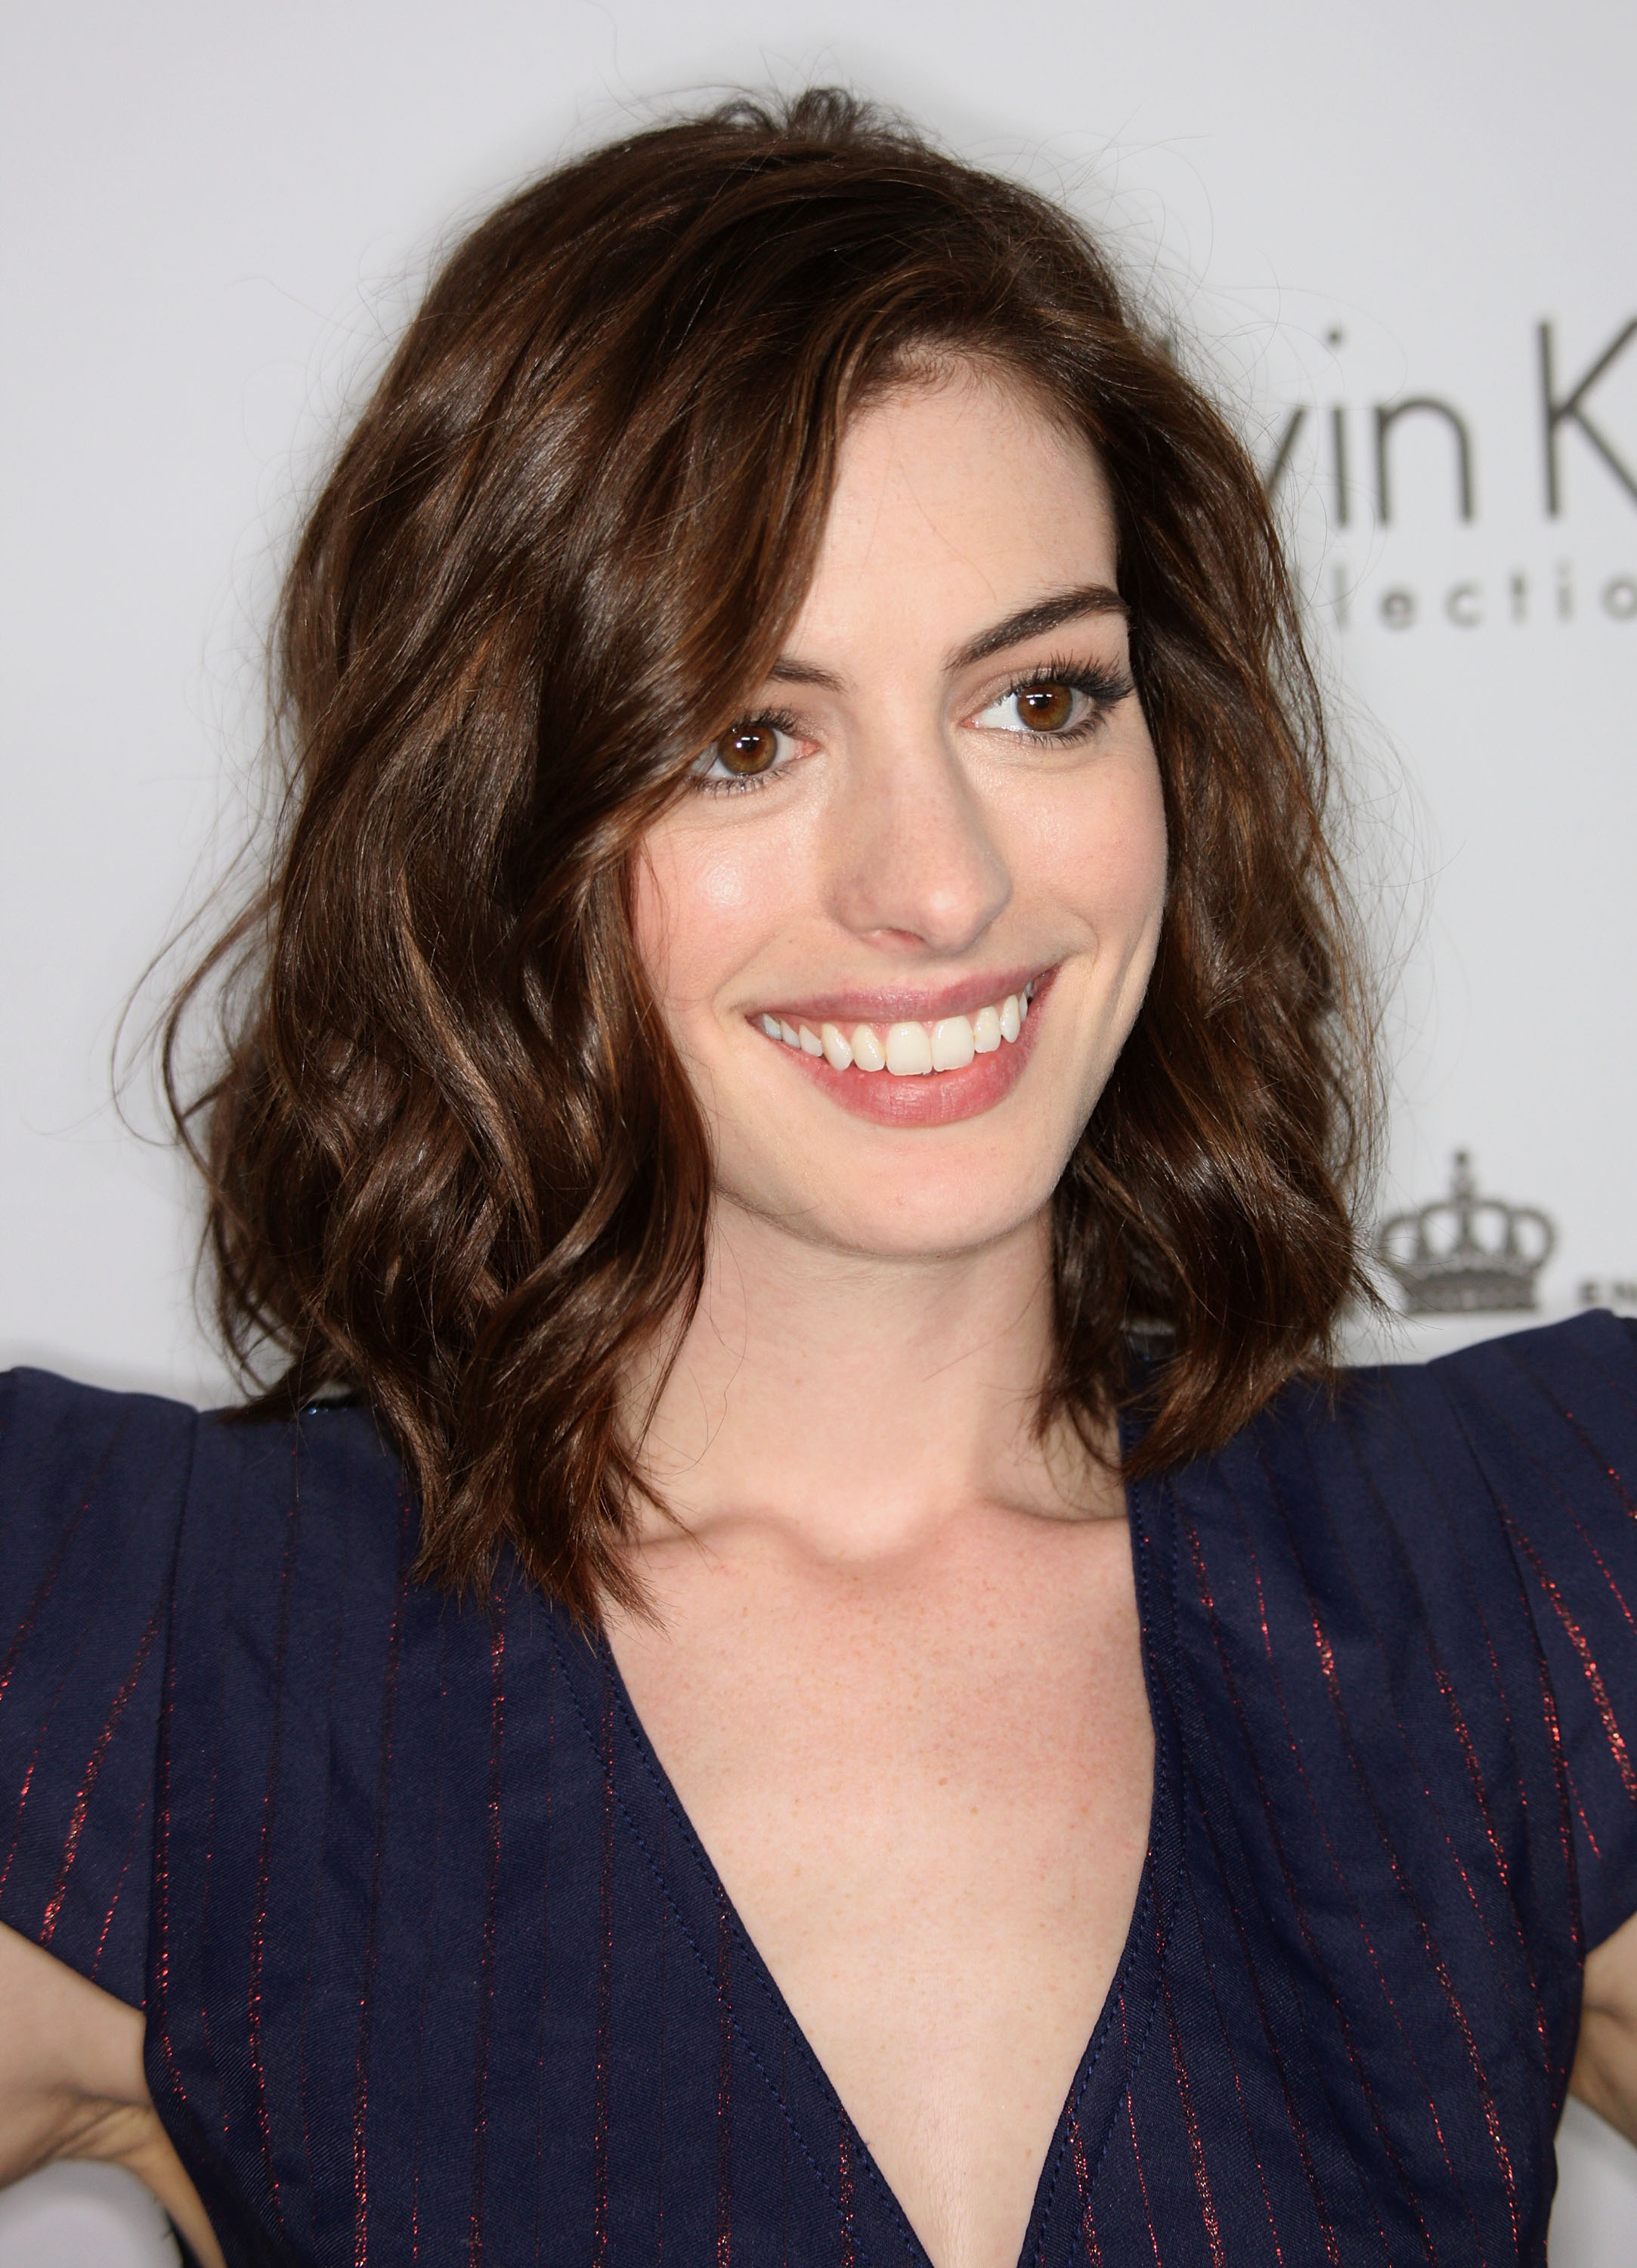 59044_Celebutopia-Anne_Hathaway-15th_annual_Women_In_Hollywood_Tribute_-09_122_166lo.jpg